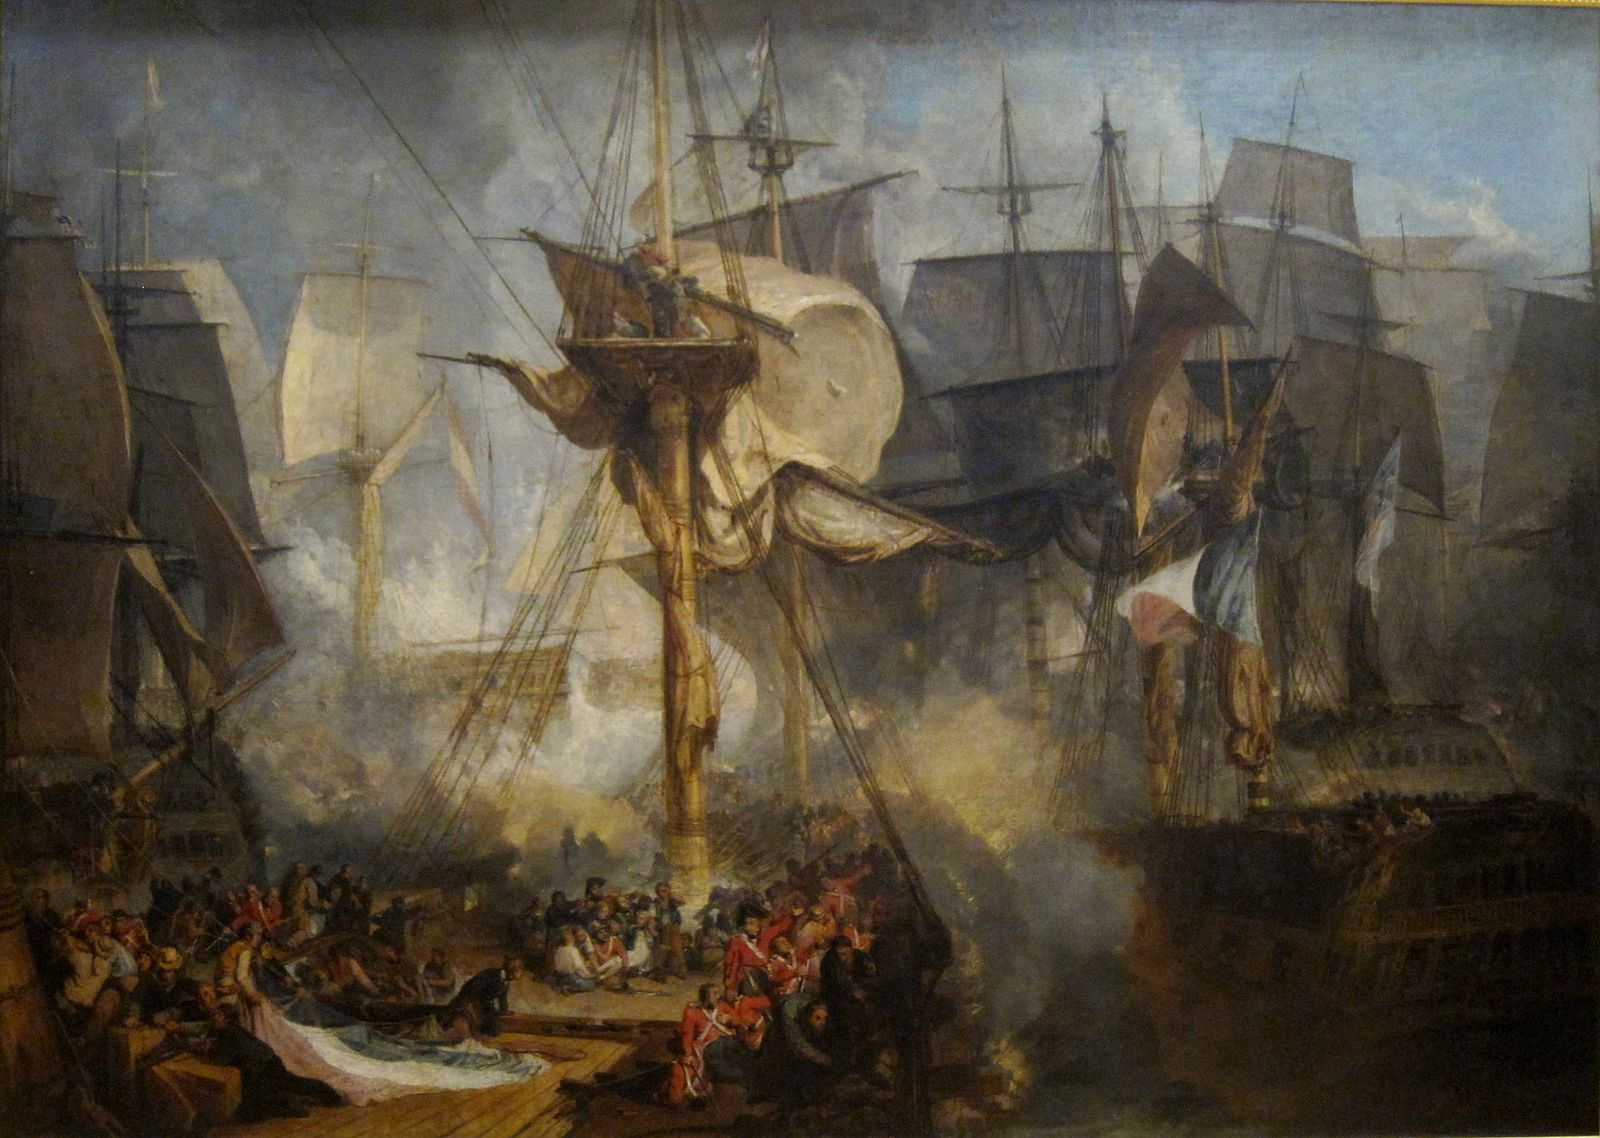 The Battle of Trafalgar, as seen from the starboard mizzen shrouds of the Victory, painted by J. M. W. Turner (Wikimedia)